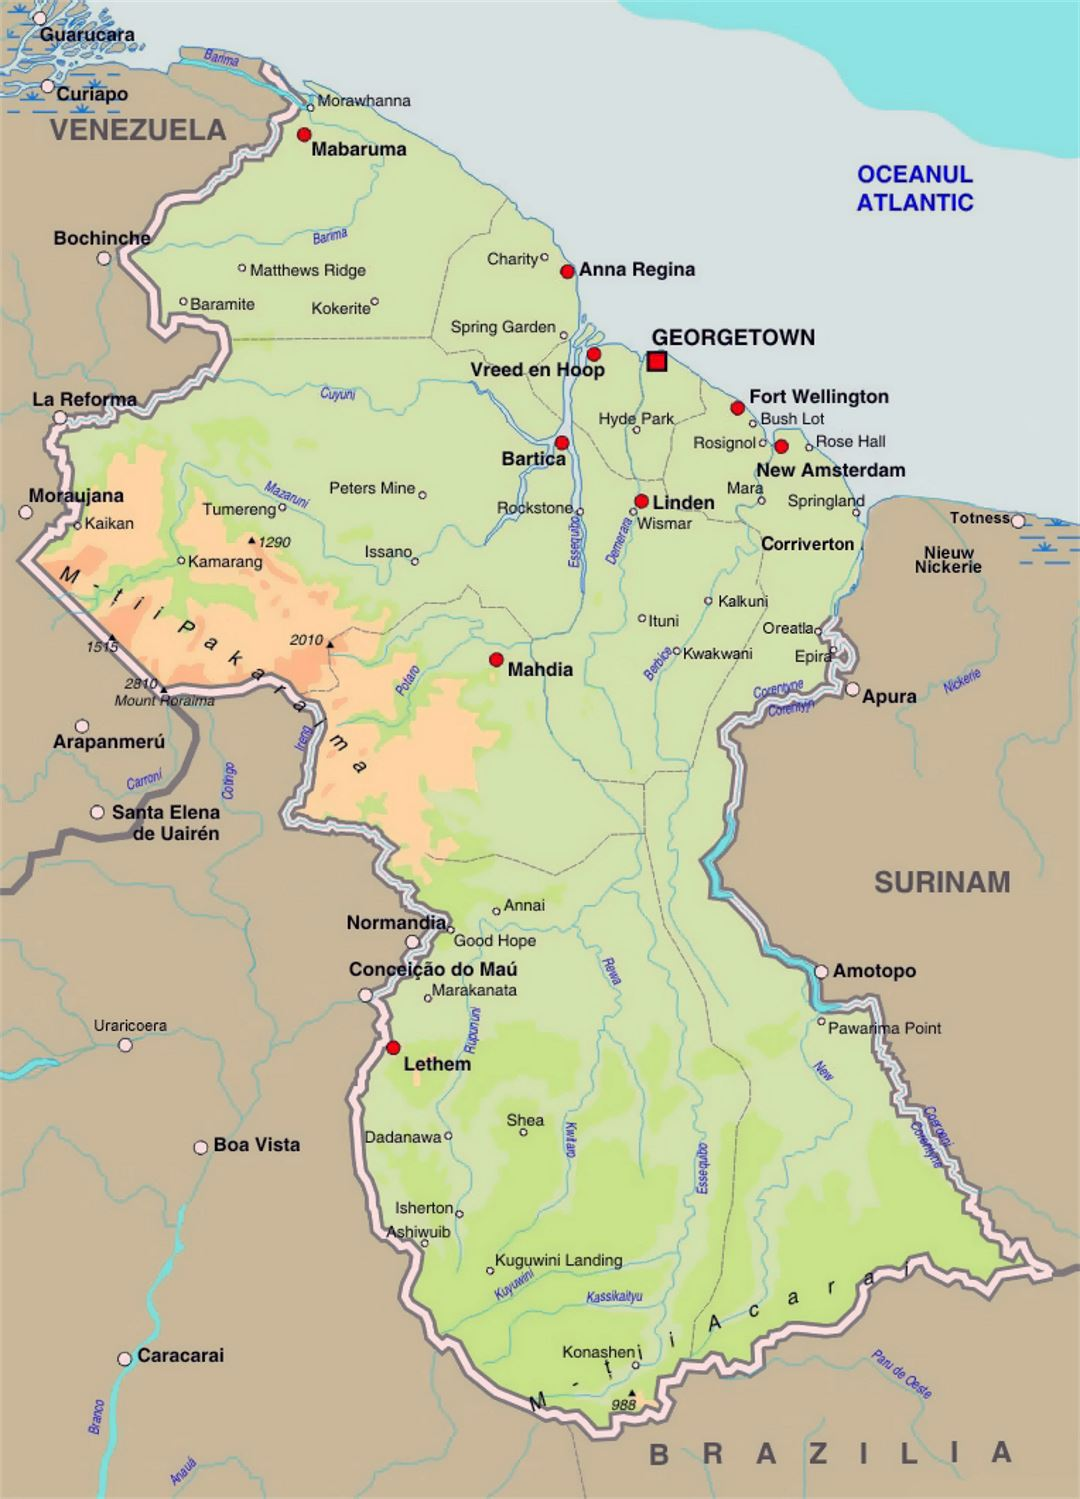 Detailed elevation map of Guyana with roads and cities